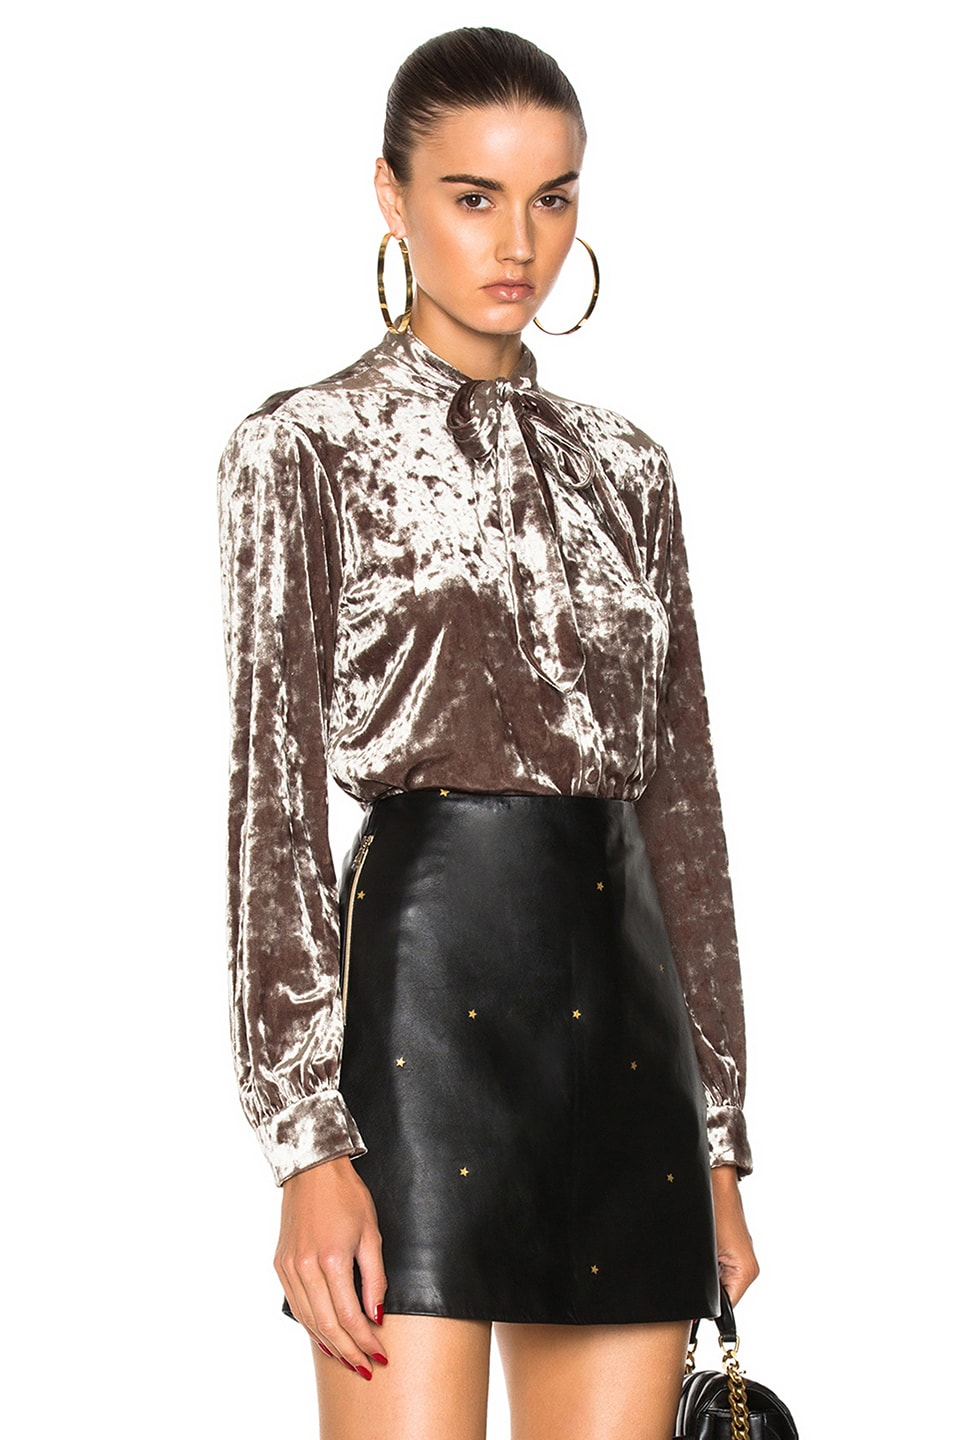 L'AGENCE Gisele Blouse in Metallics,Yellow